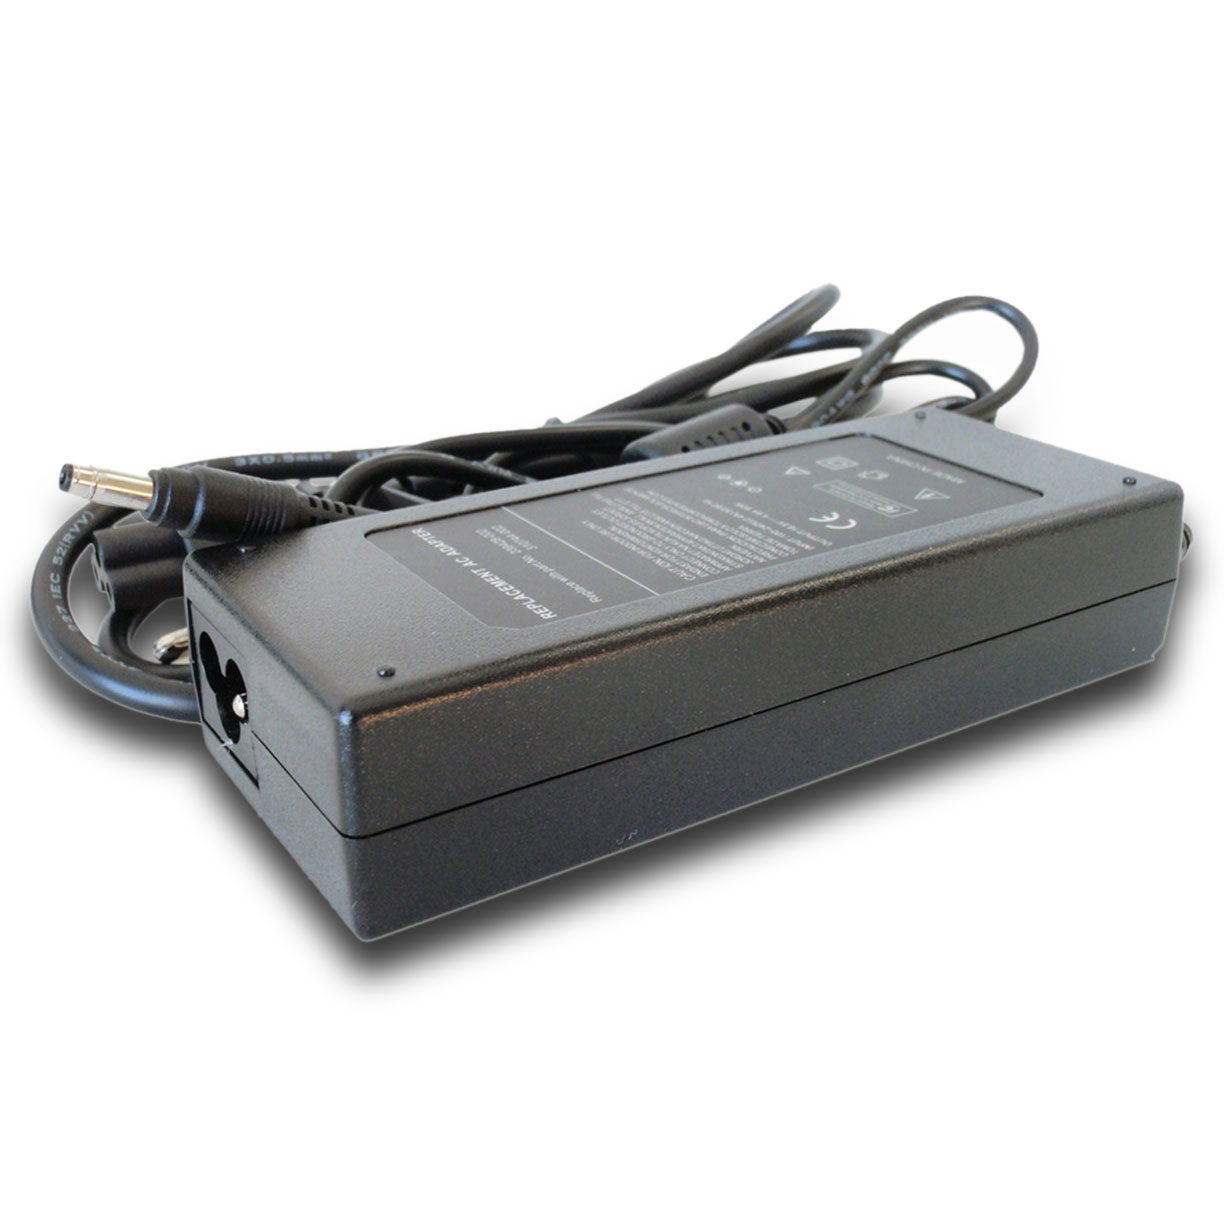 HP Compaq 239428-002 613150-001 HSTNN-Q21C AC Power Adapter Battery Charger Power Supply as Replacement Part at Sears.com